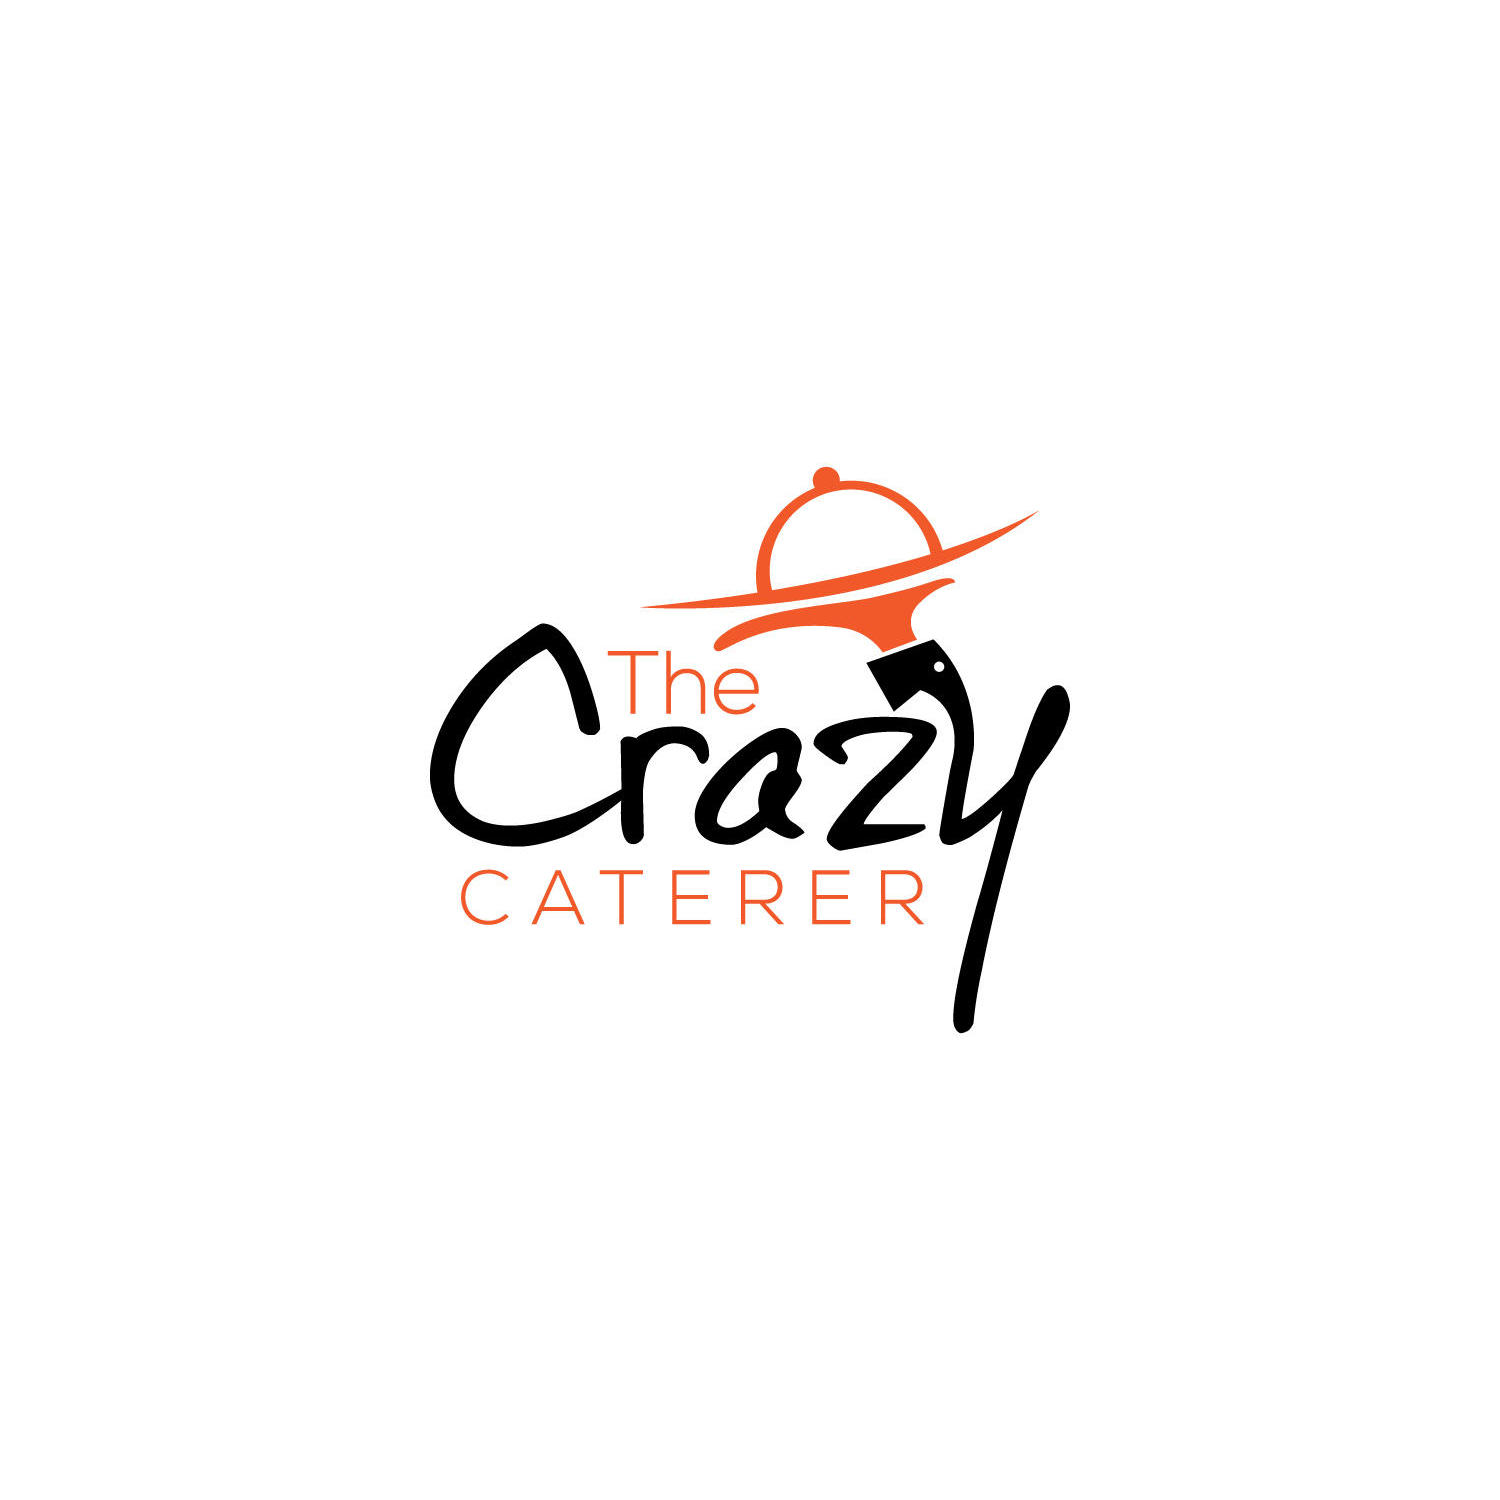 The Crazy Caterer